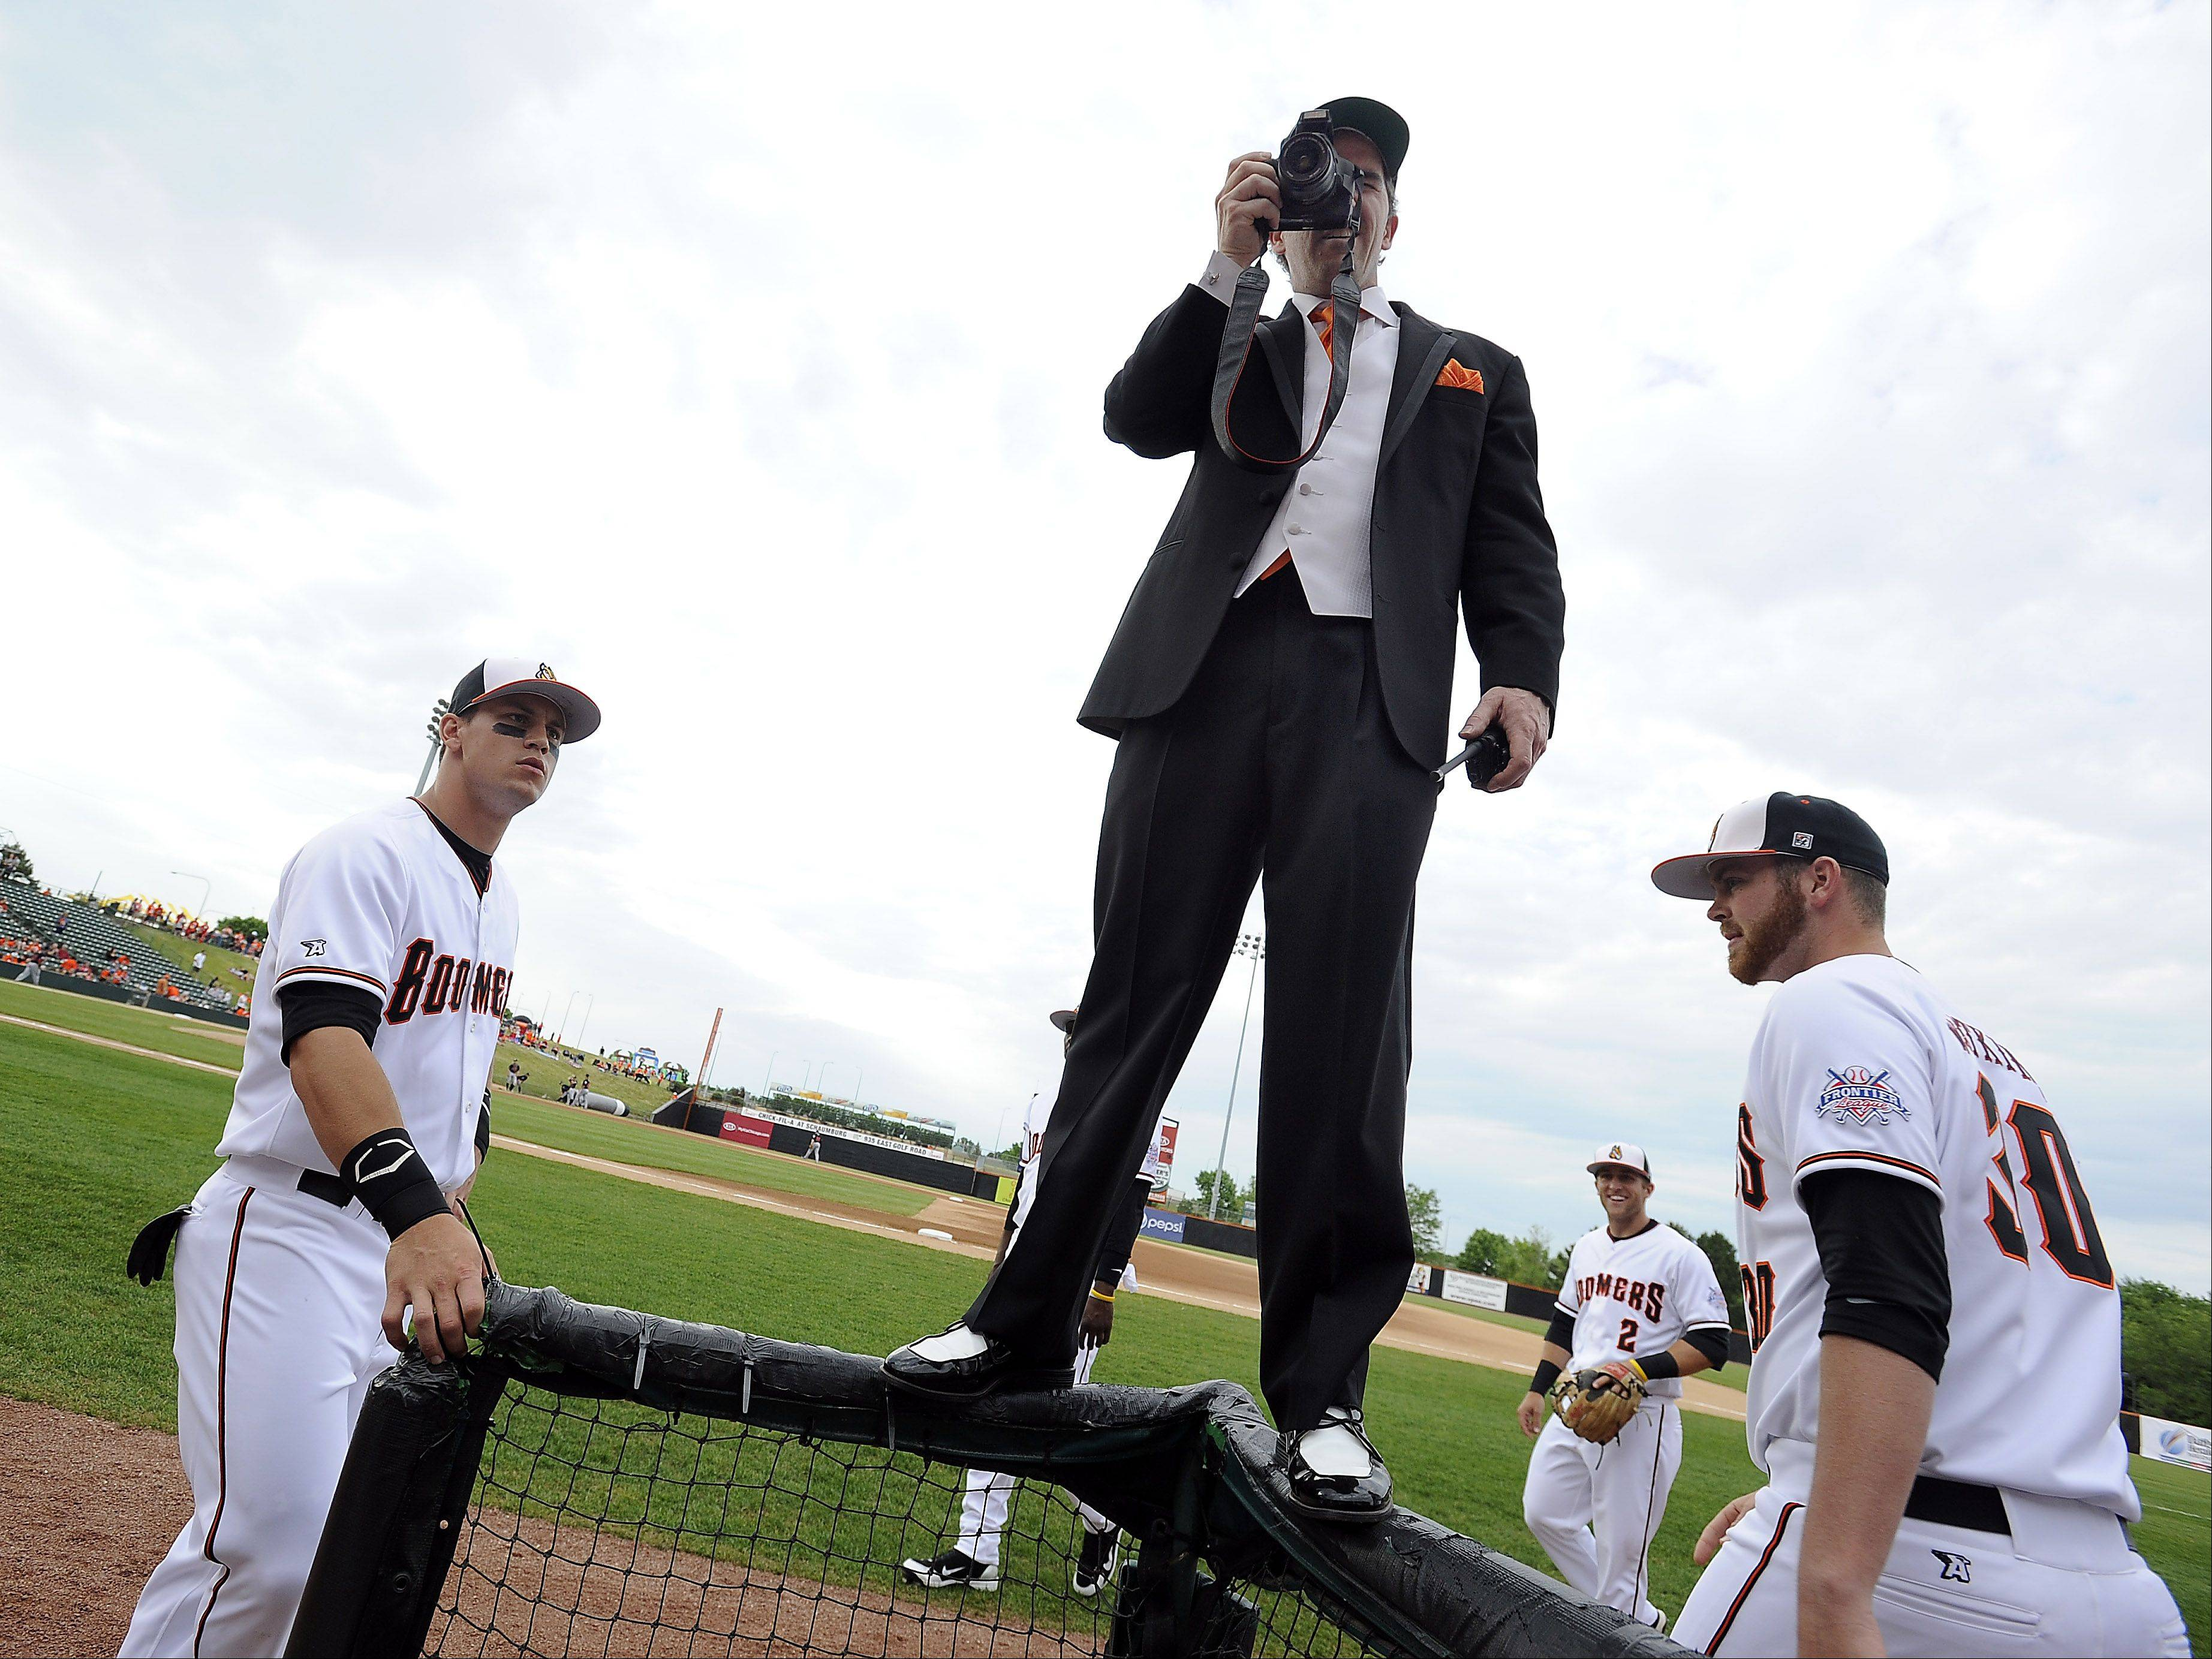 Baseball history in the making is captured by Boomers photographer Jeff Ney at Boomers Stadium in Schaumburg on Friday.